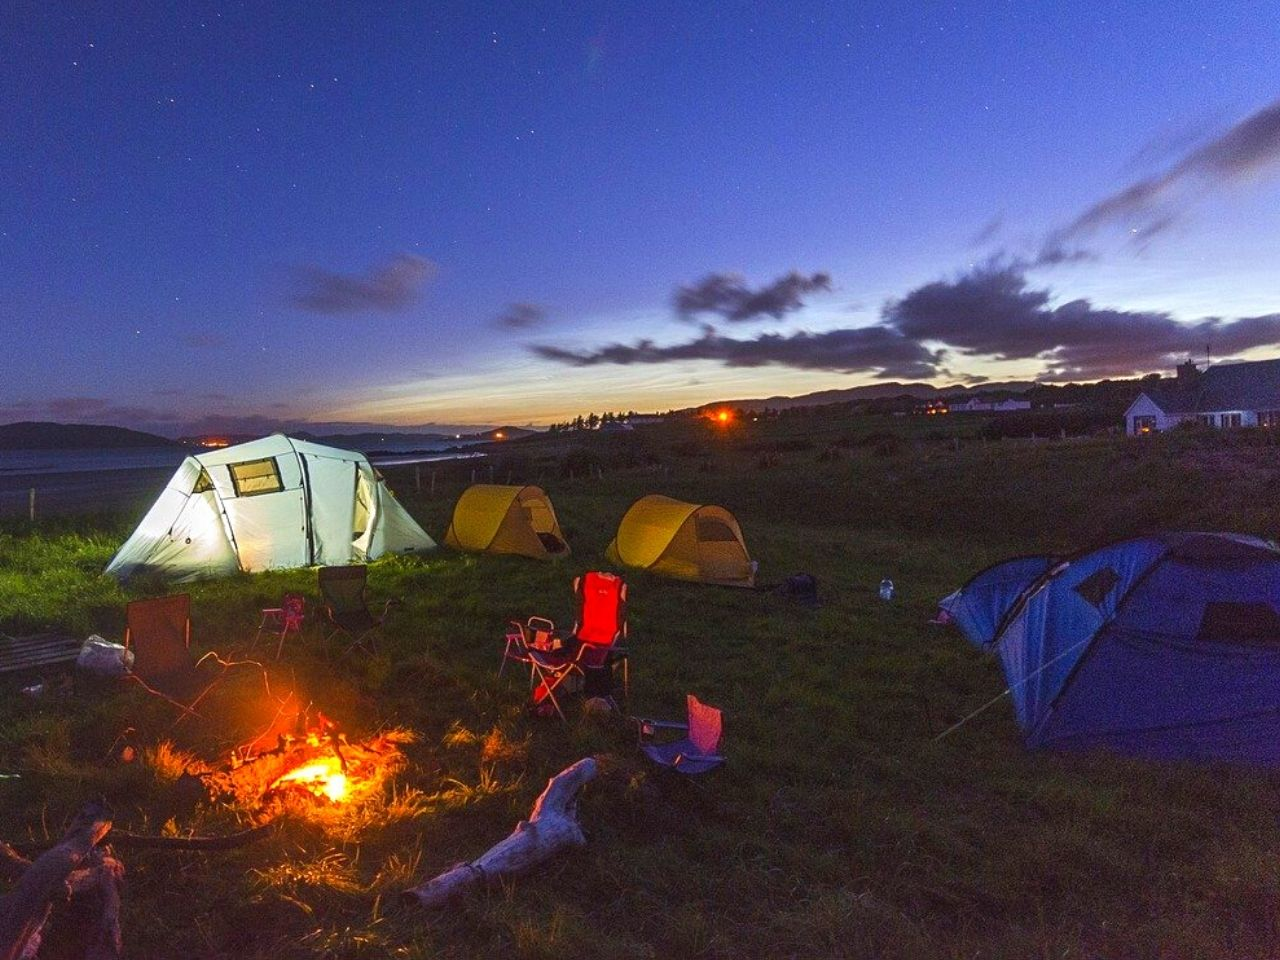 The 10 Best Places to Camp for Beginners